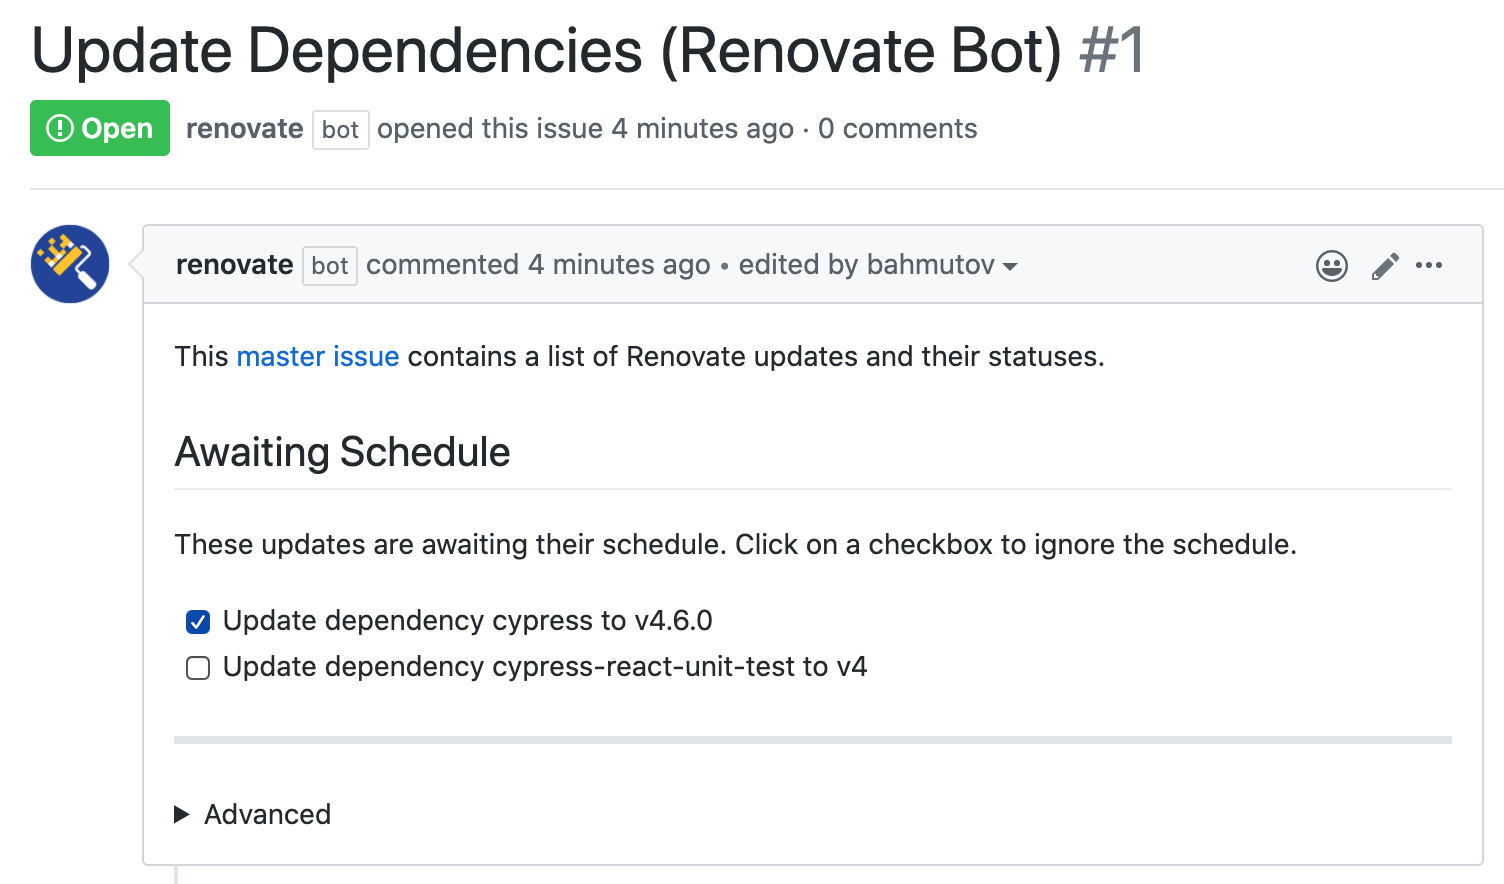 Click checkbox next to the dependency to update